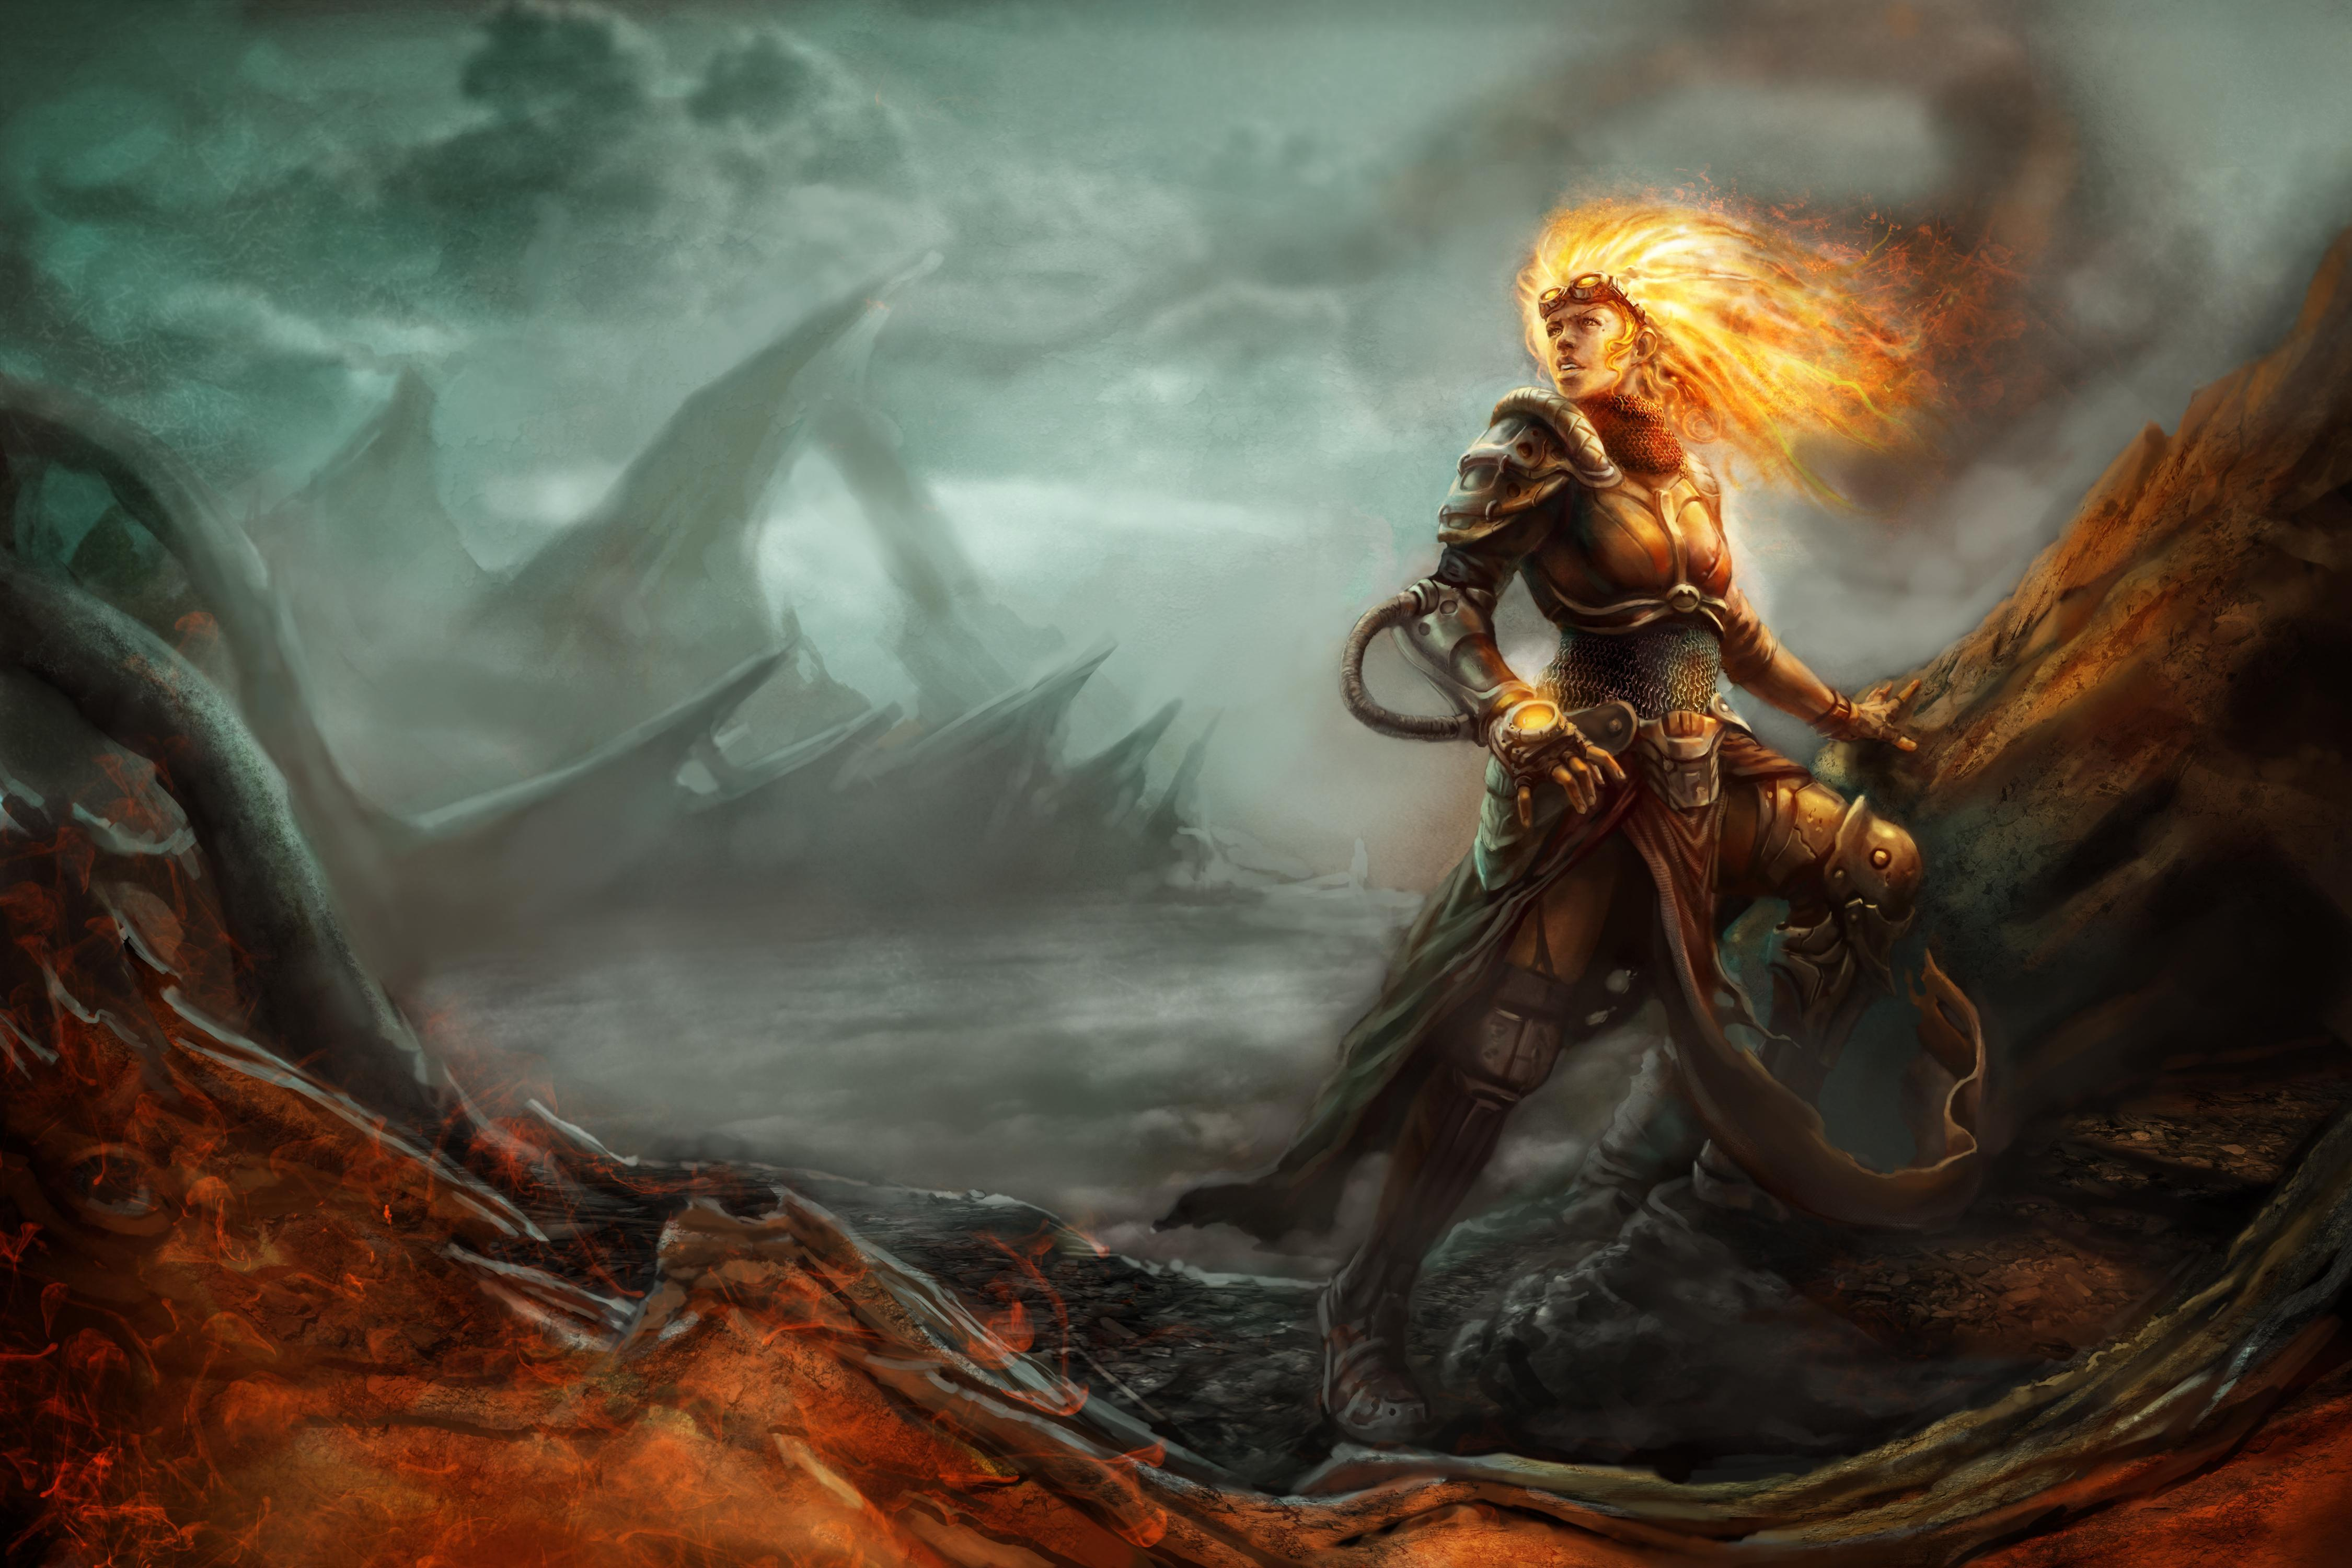 Download wallpapers 4500x3000 magic, the gathering, chandra, art hd